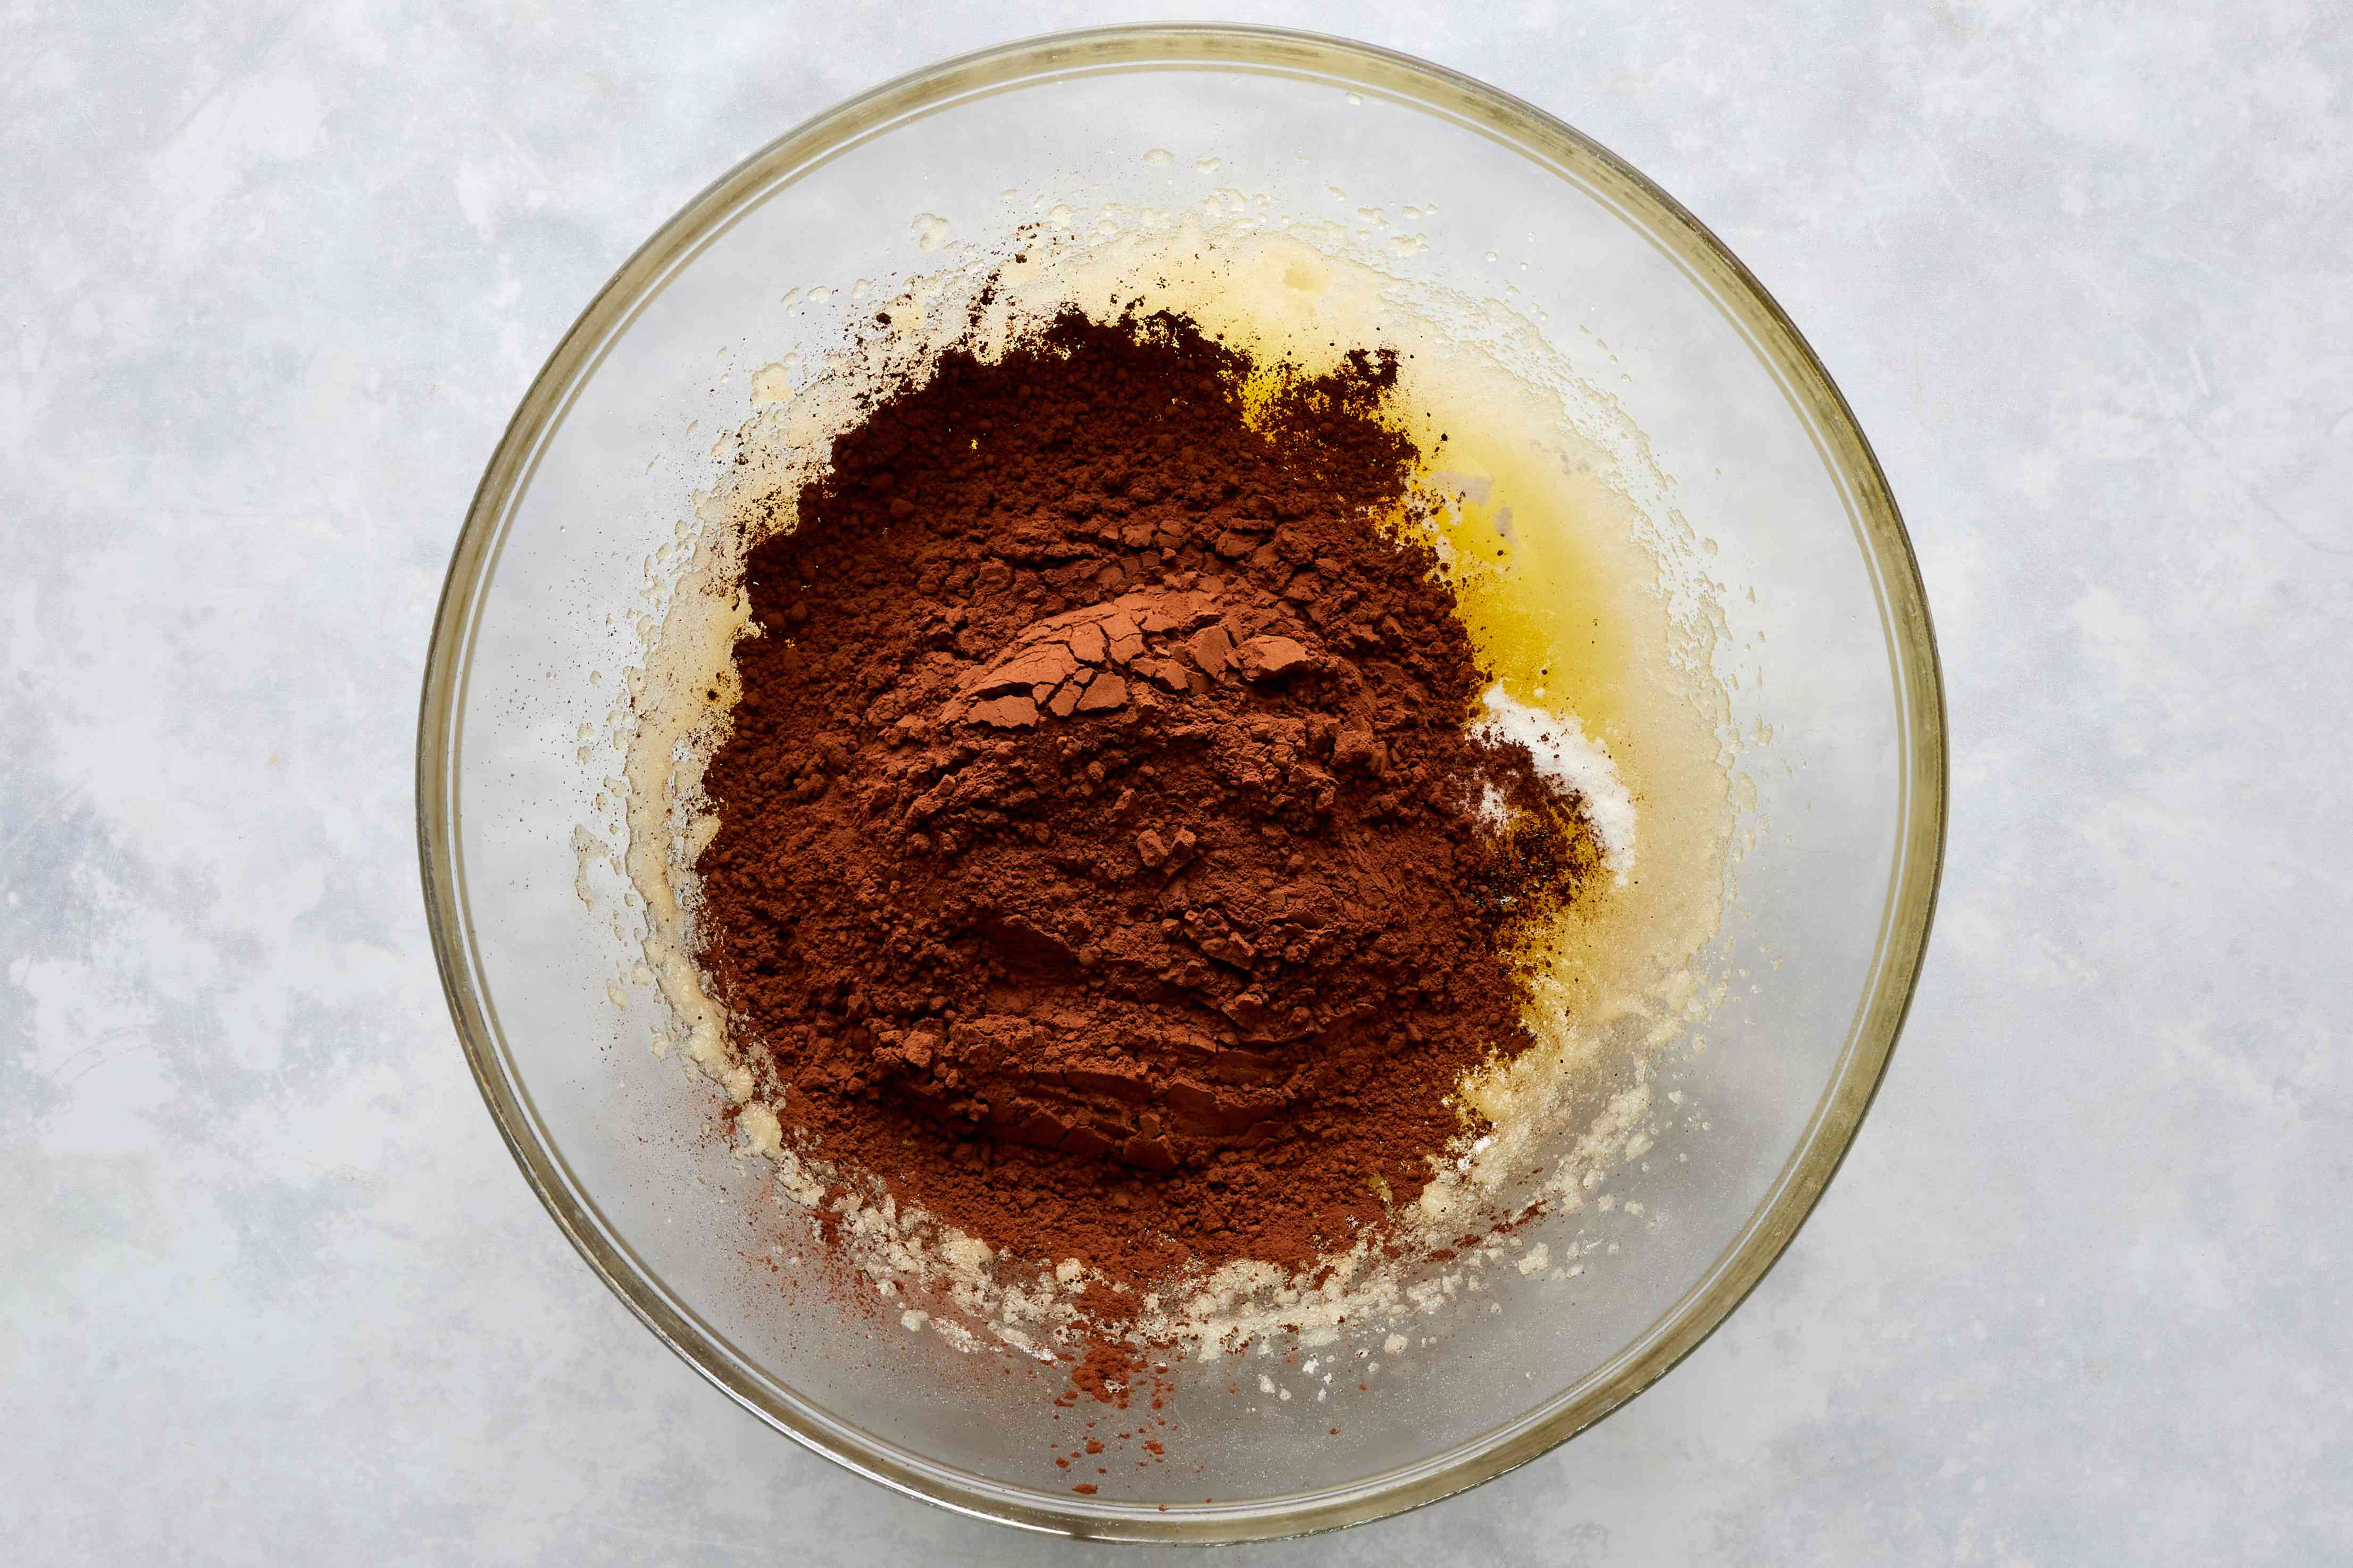 salt, vanilla extract, baking soda, baking powder, and cocoa powder on top of the butter and sugar mixture in a large glass bowl